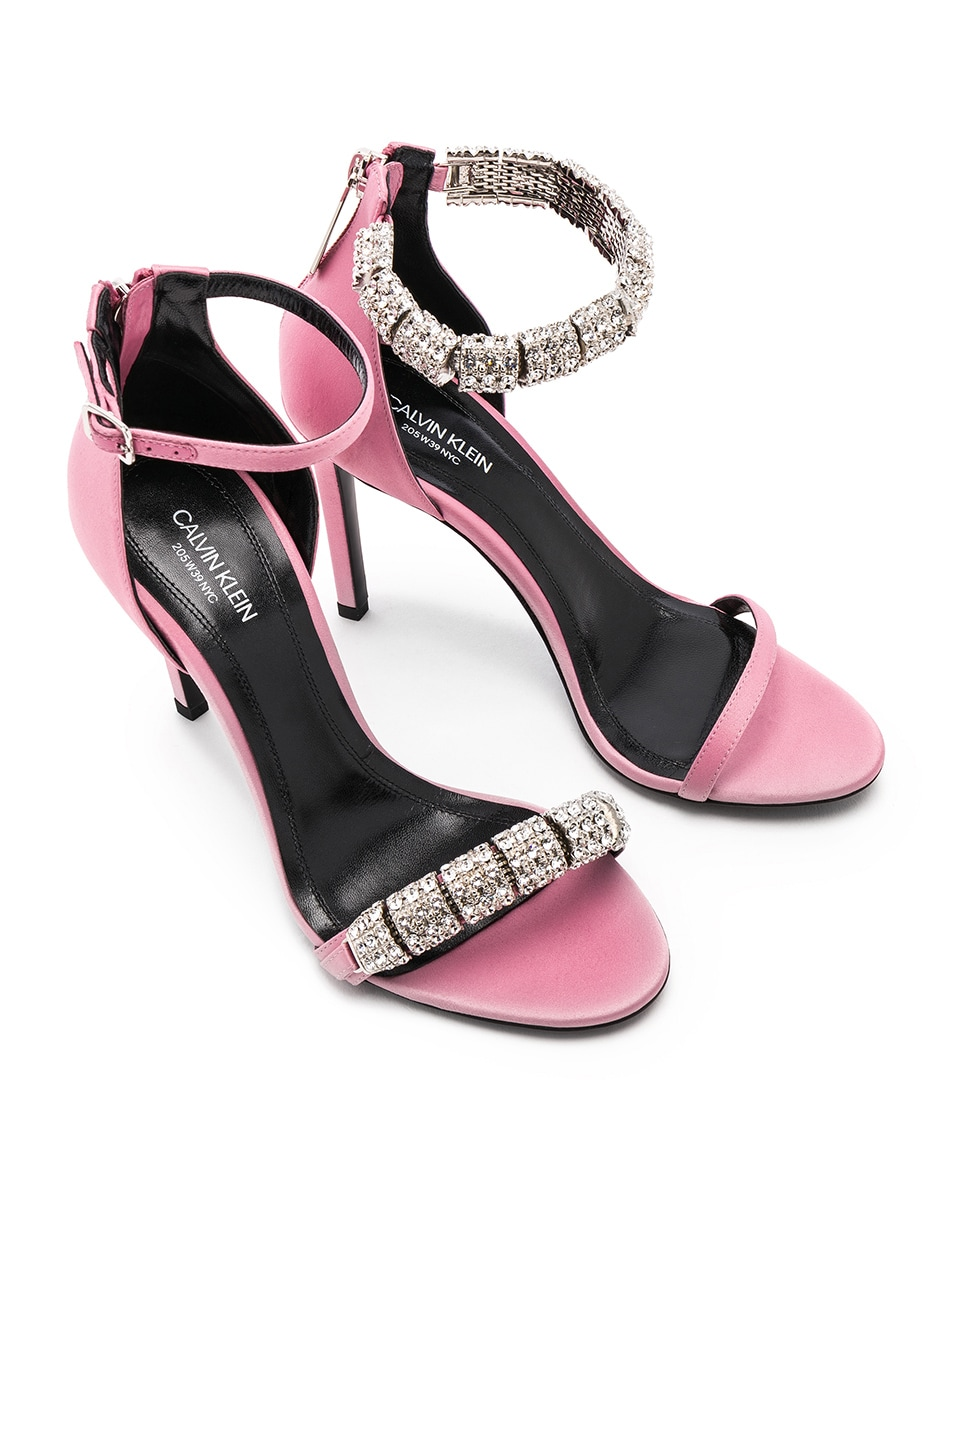 6801b6fab261e6 Image 1 of CALVIN KLEIN 205W39NYC Satin Camelle 501 Sandals in Rose